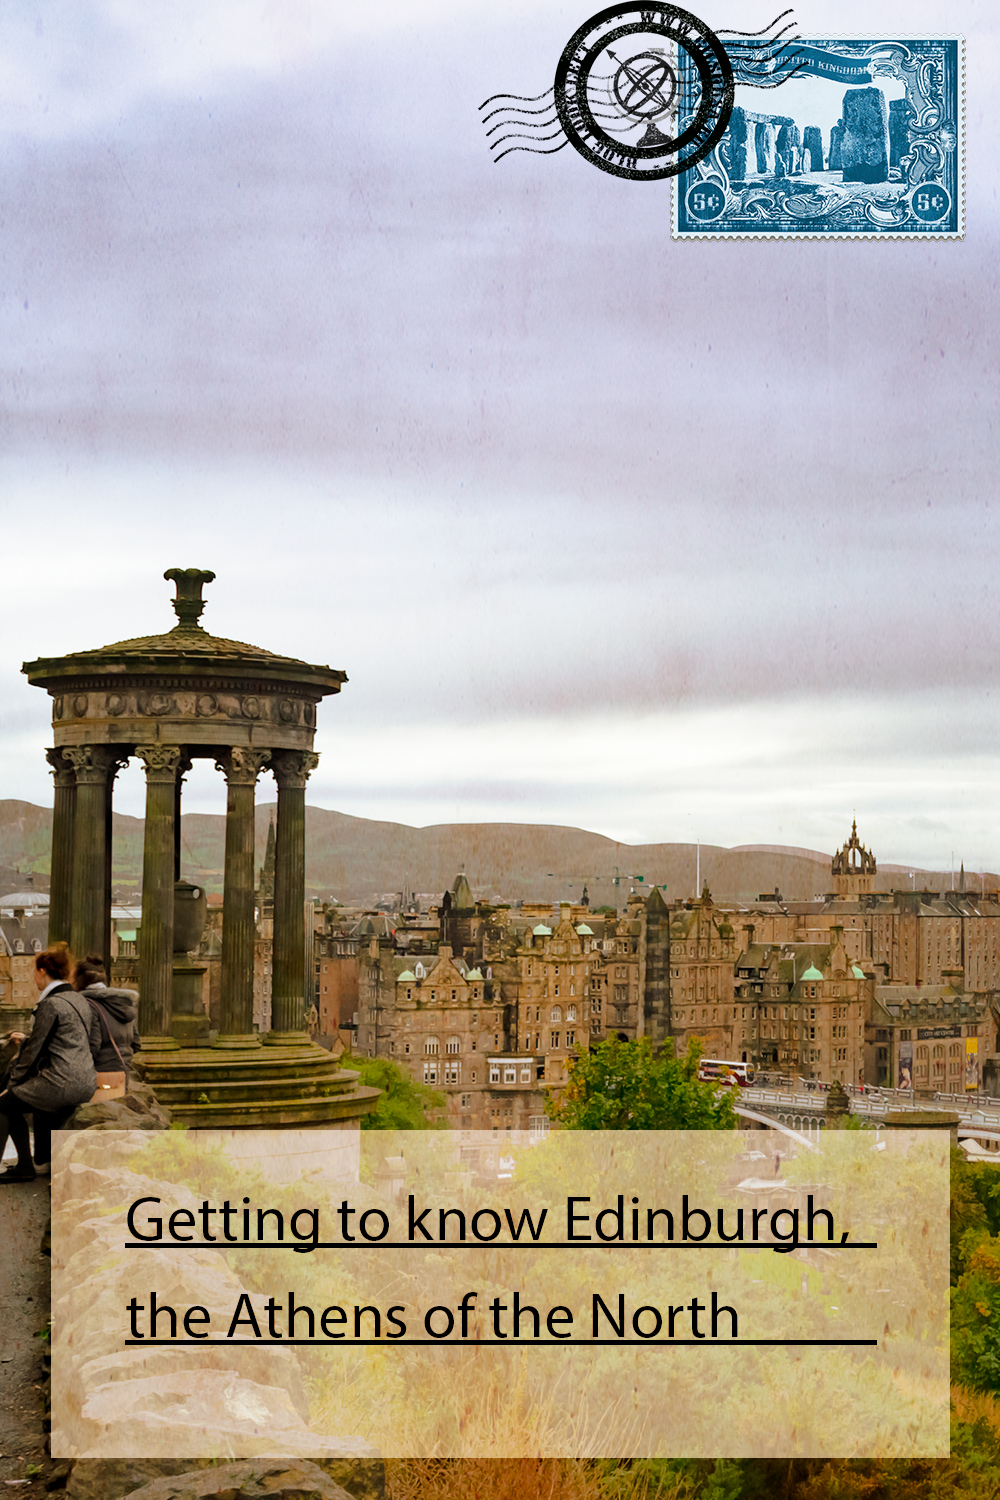 Getting to know Edinburgh, the Athens of the North